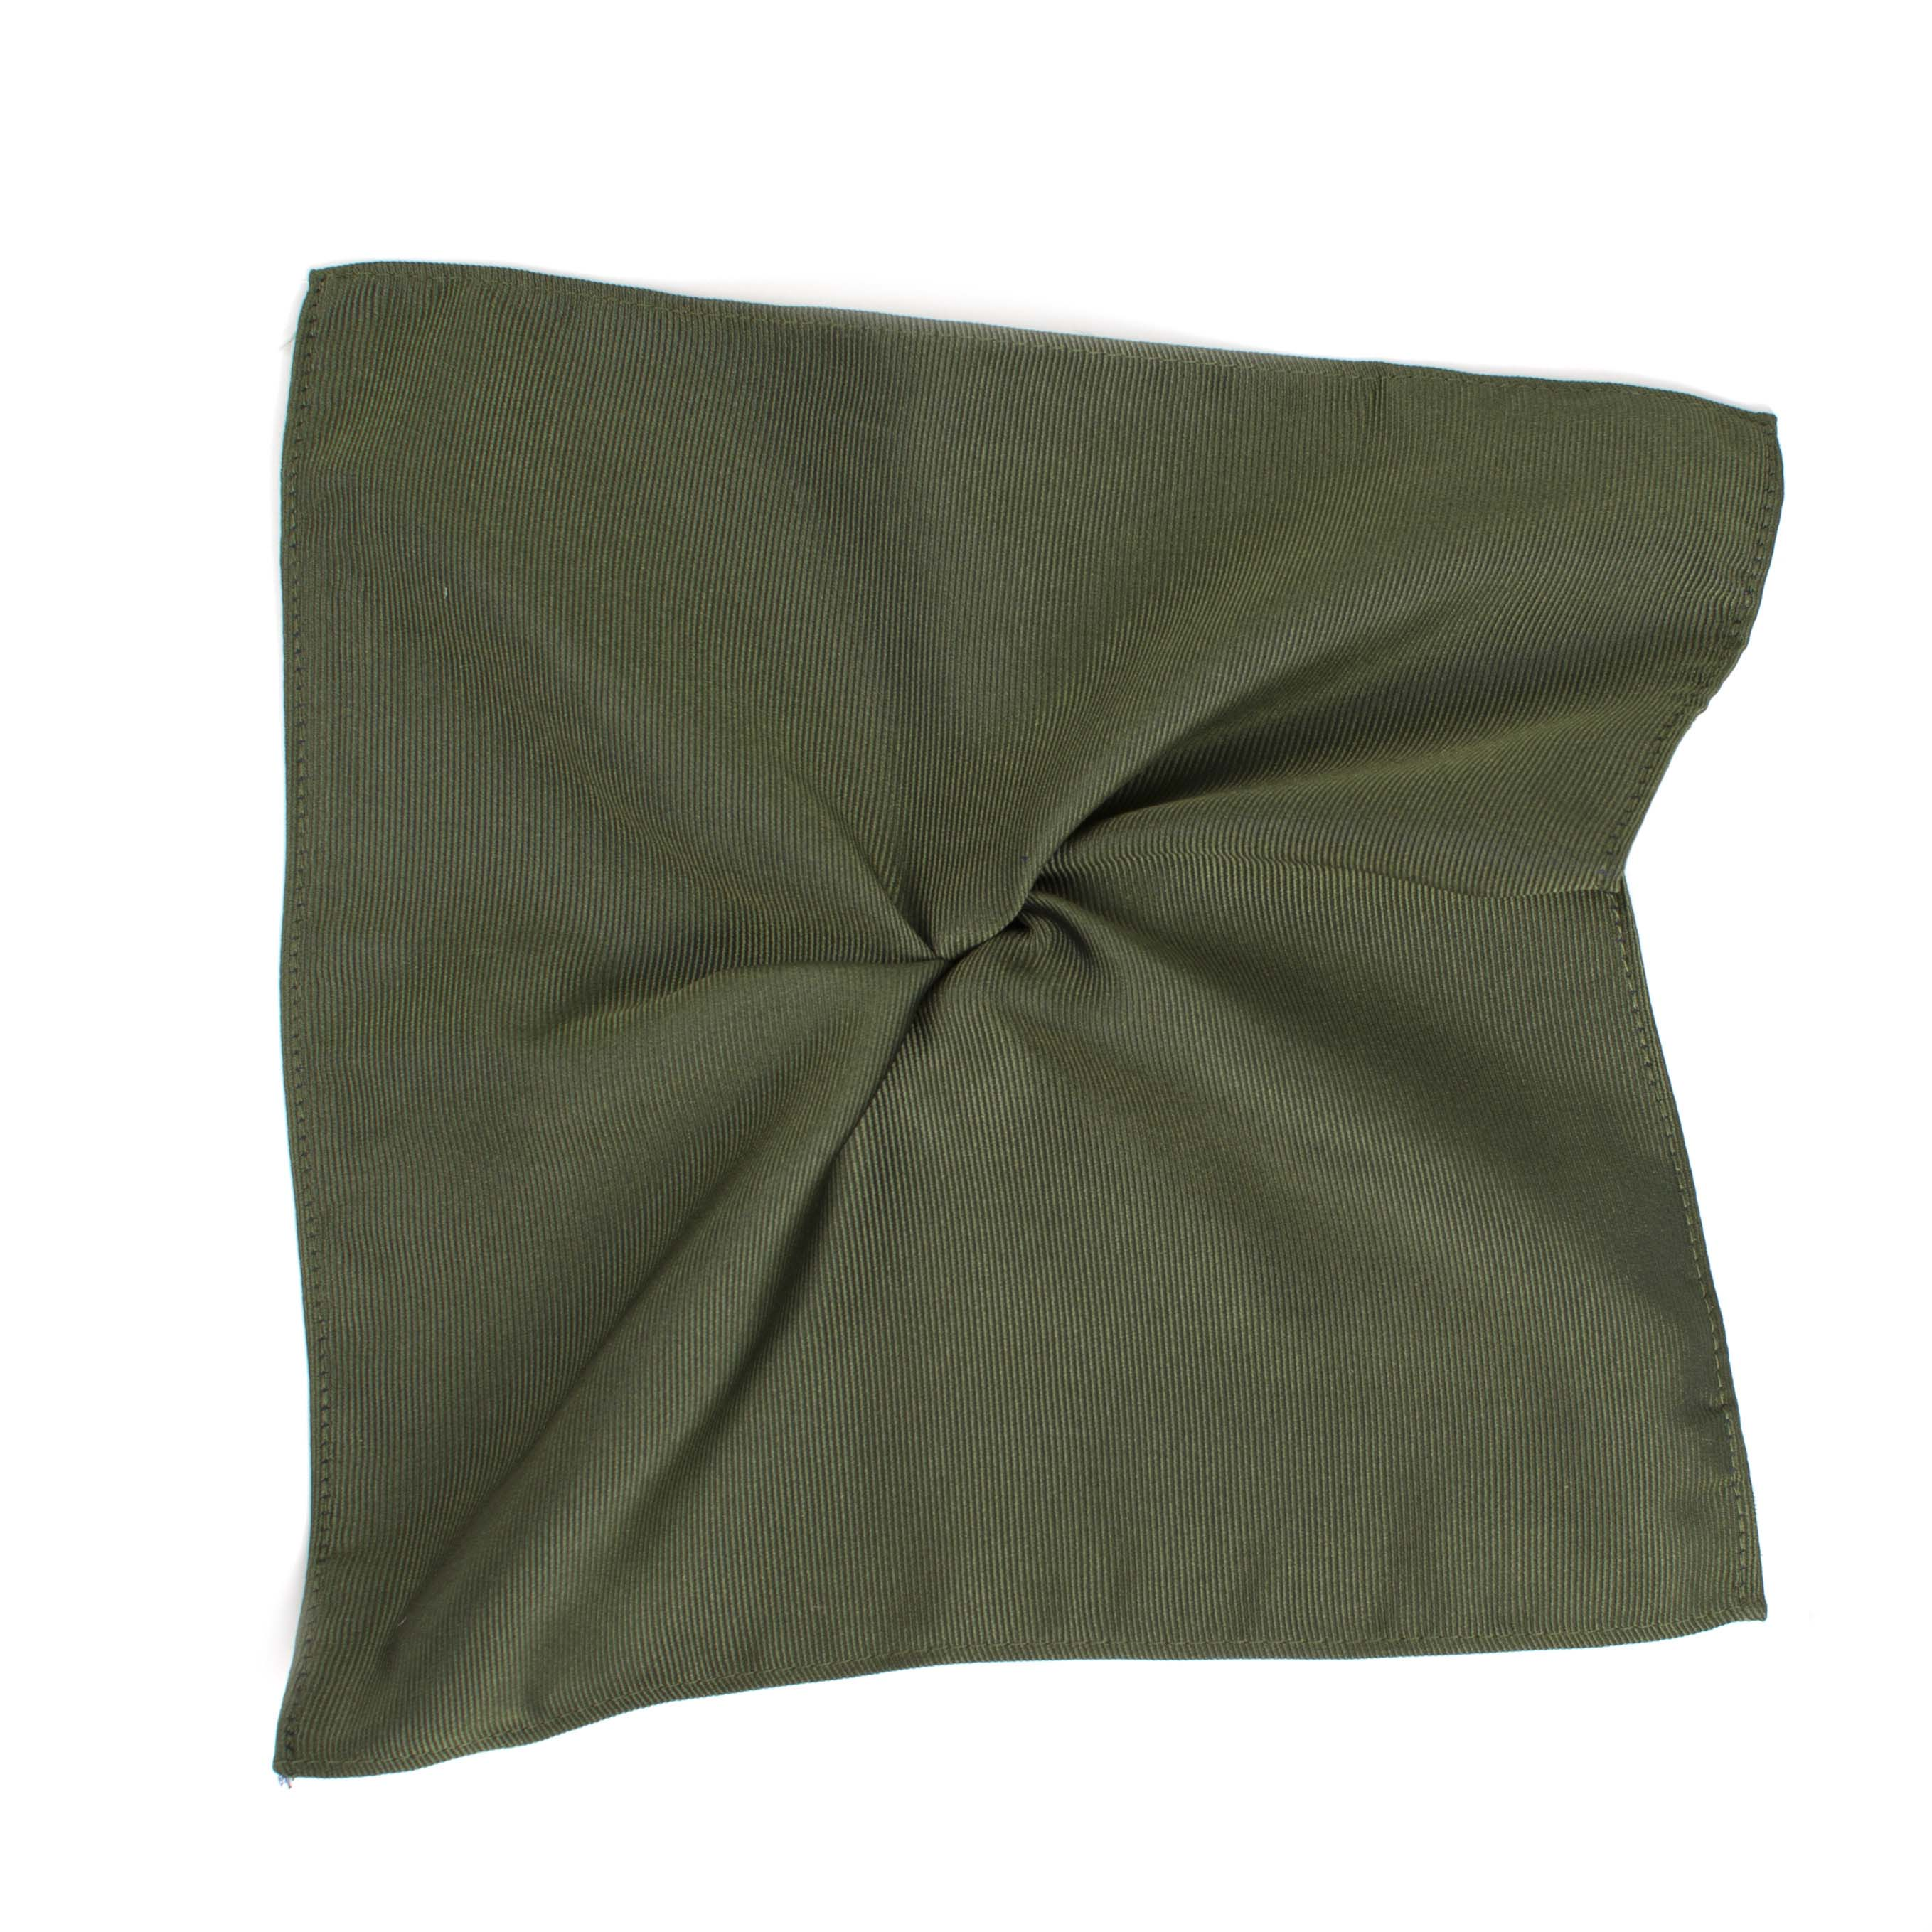 Pocket square classic green ribbed